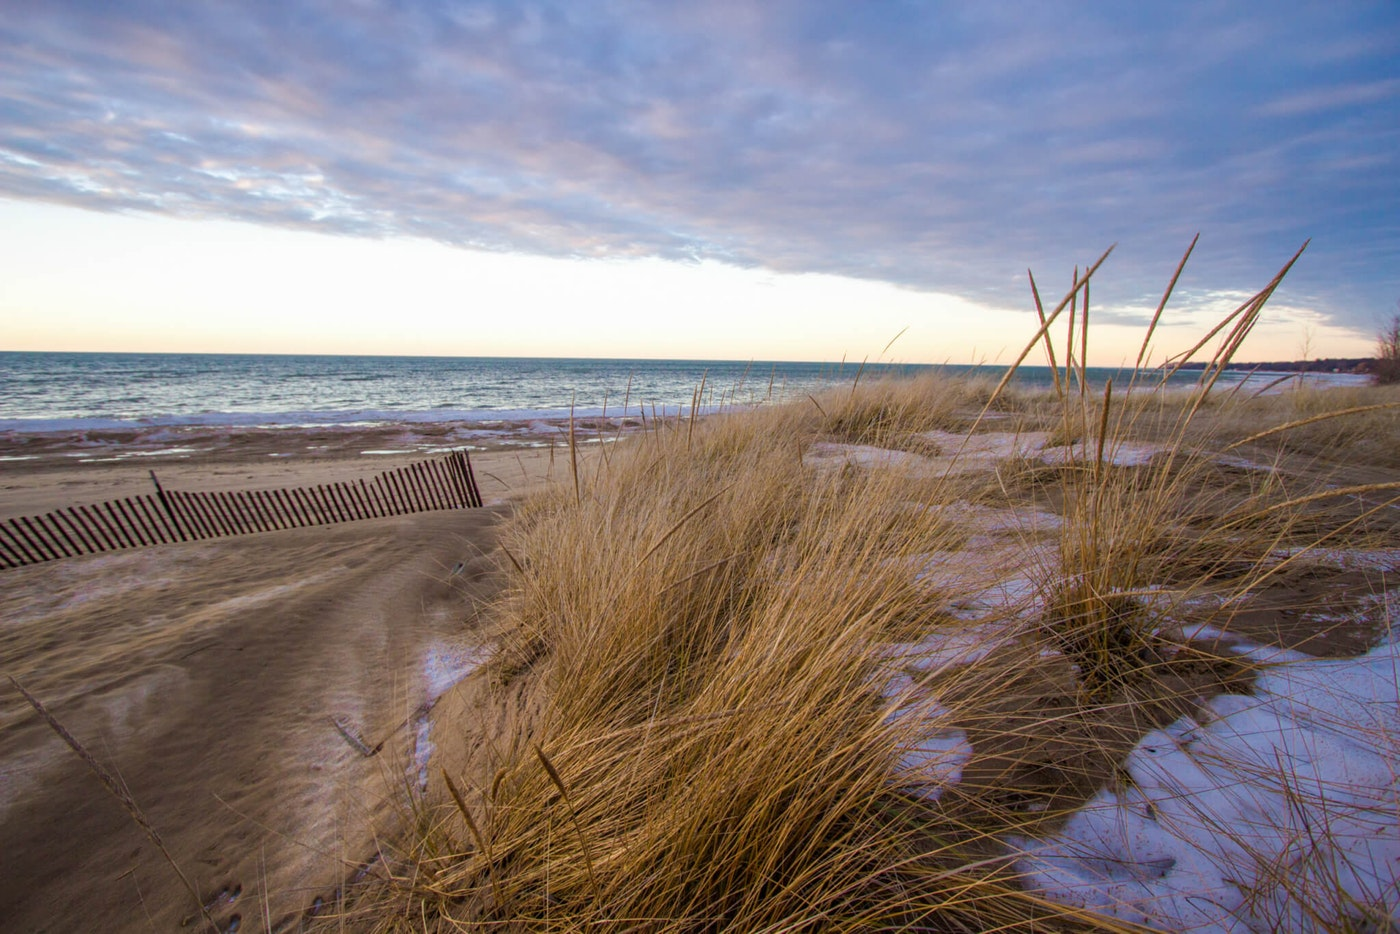 Golden dune grass on a sandy beach on the shores of Lake Huron.